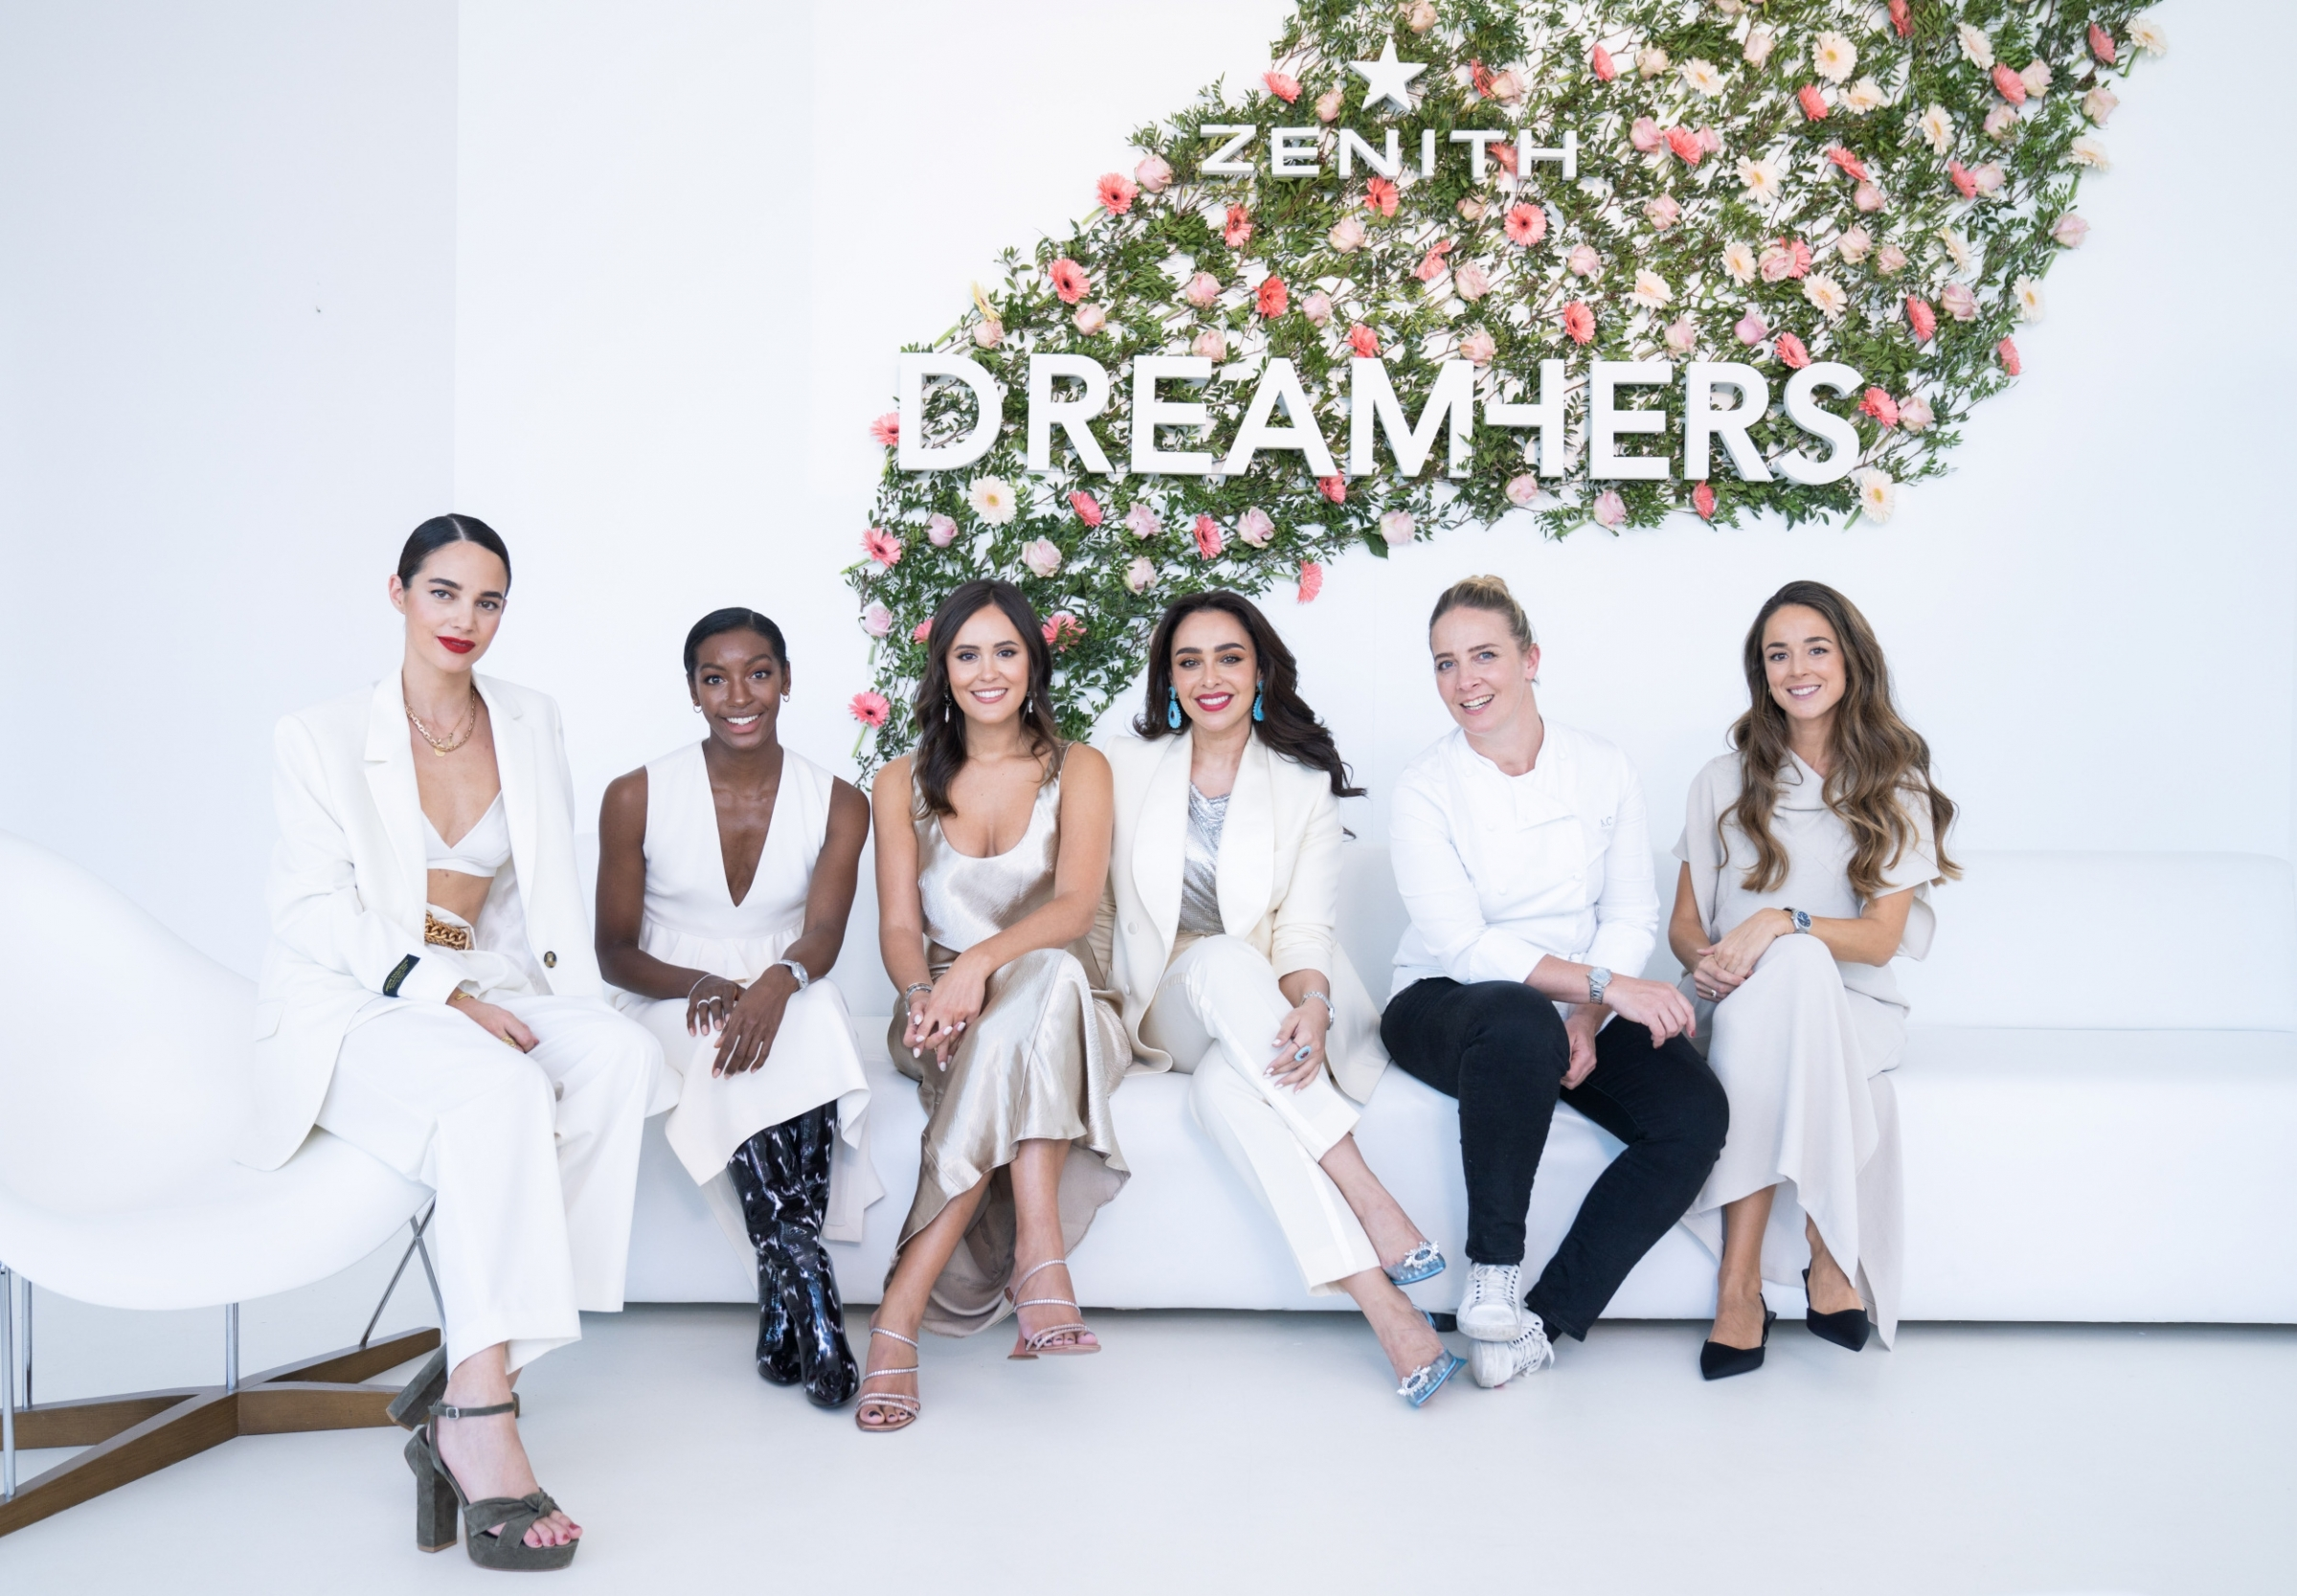 ZENITH-MEET-THE-DREAMHERS-EVENT_small